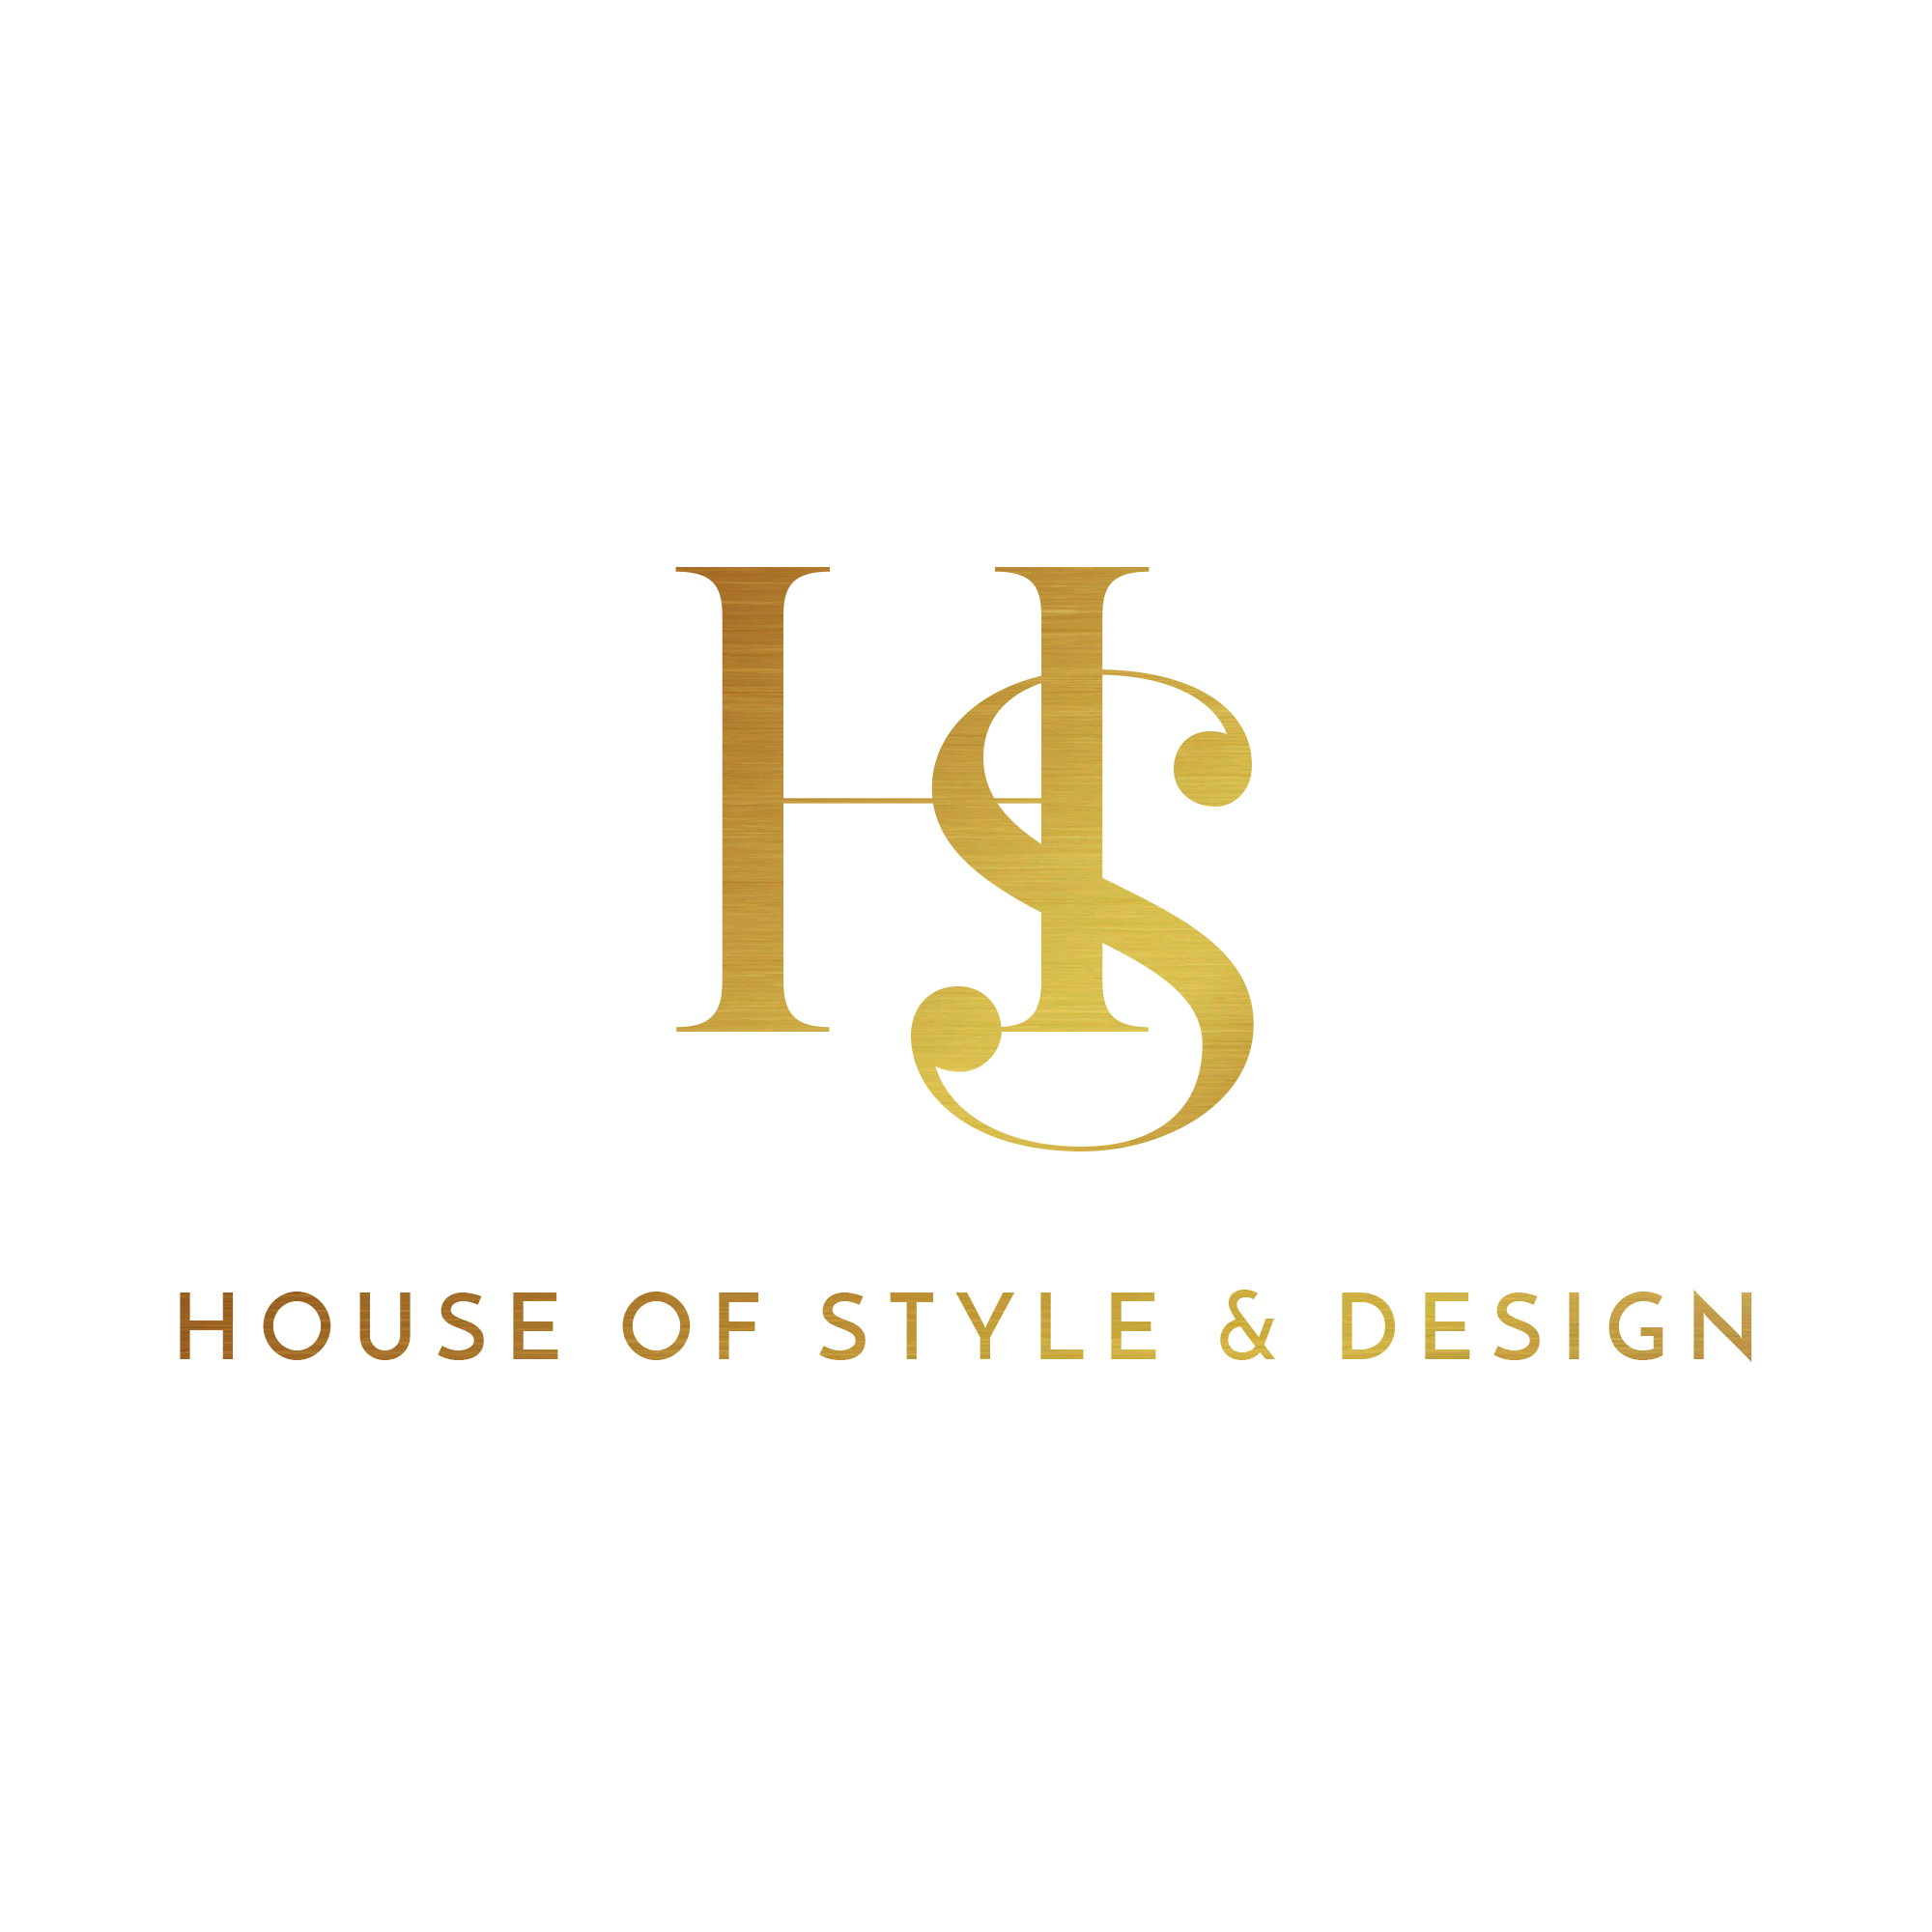 House of Style & Design | Interior Design New Jersey